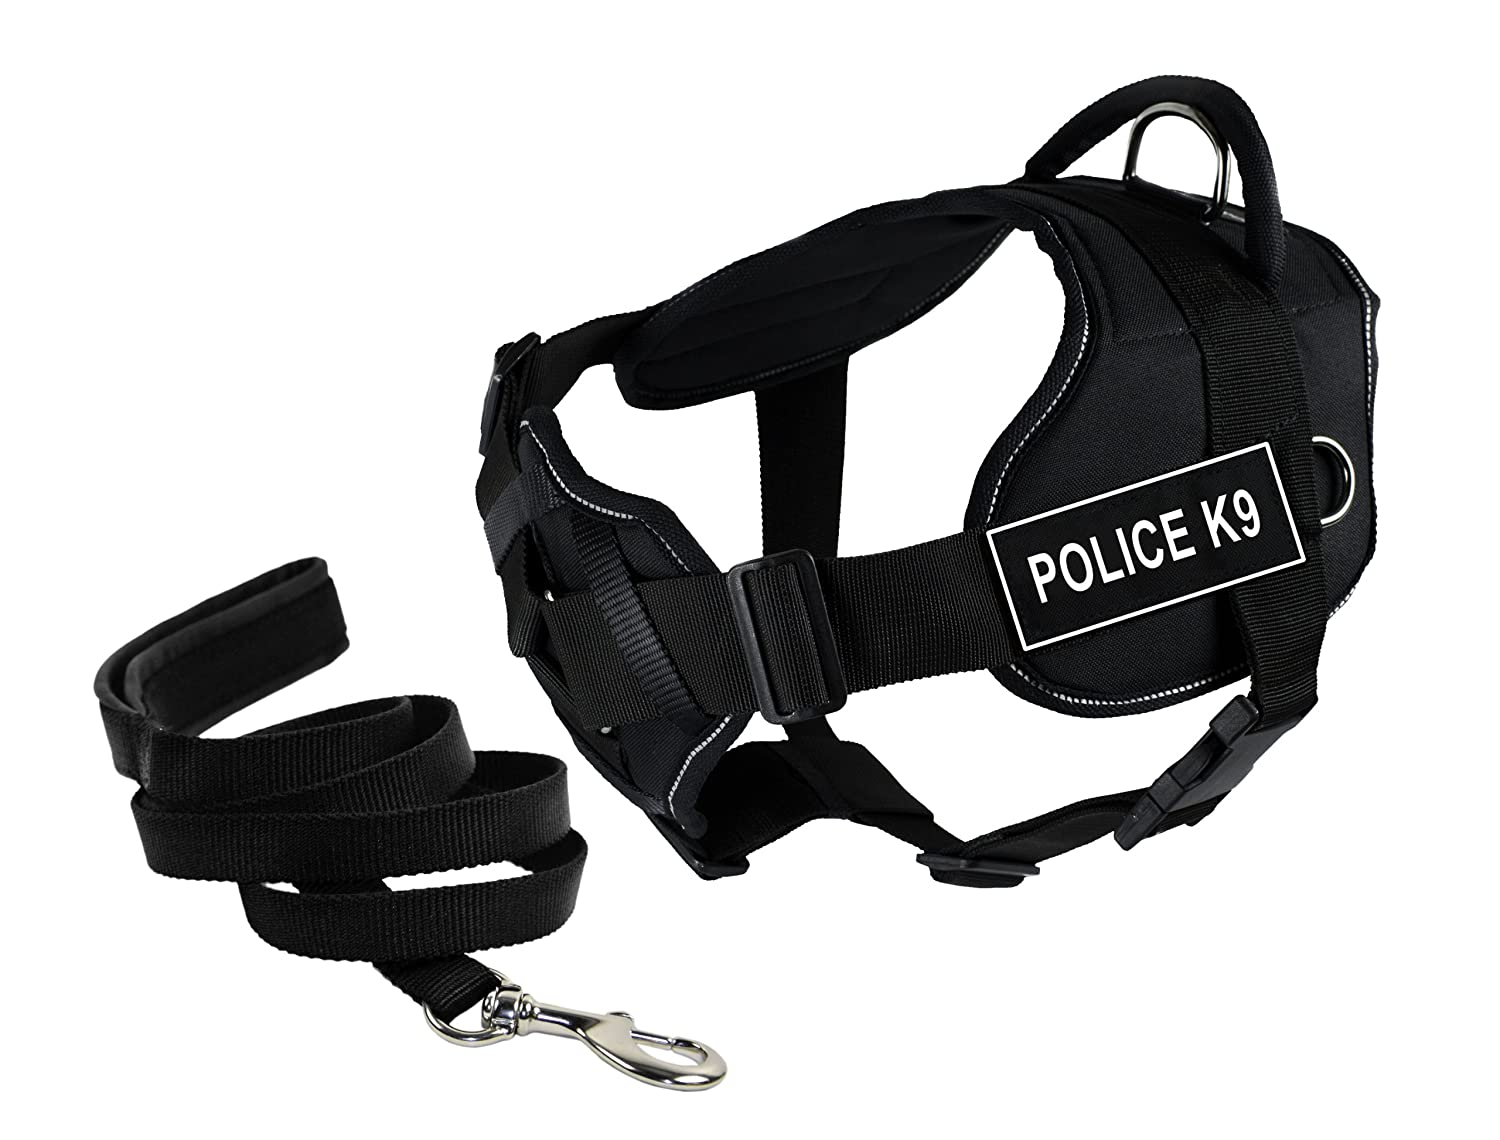 Dean & Tyler Bundle of 22 to 27-Inch DT Fun Harness with Chest Support and 6-Feet Stainless Snap Padded Puppy Leash, Police K9, Black with Reflective Trim